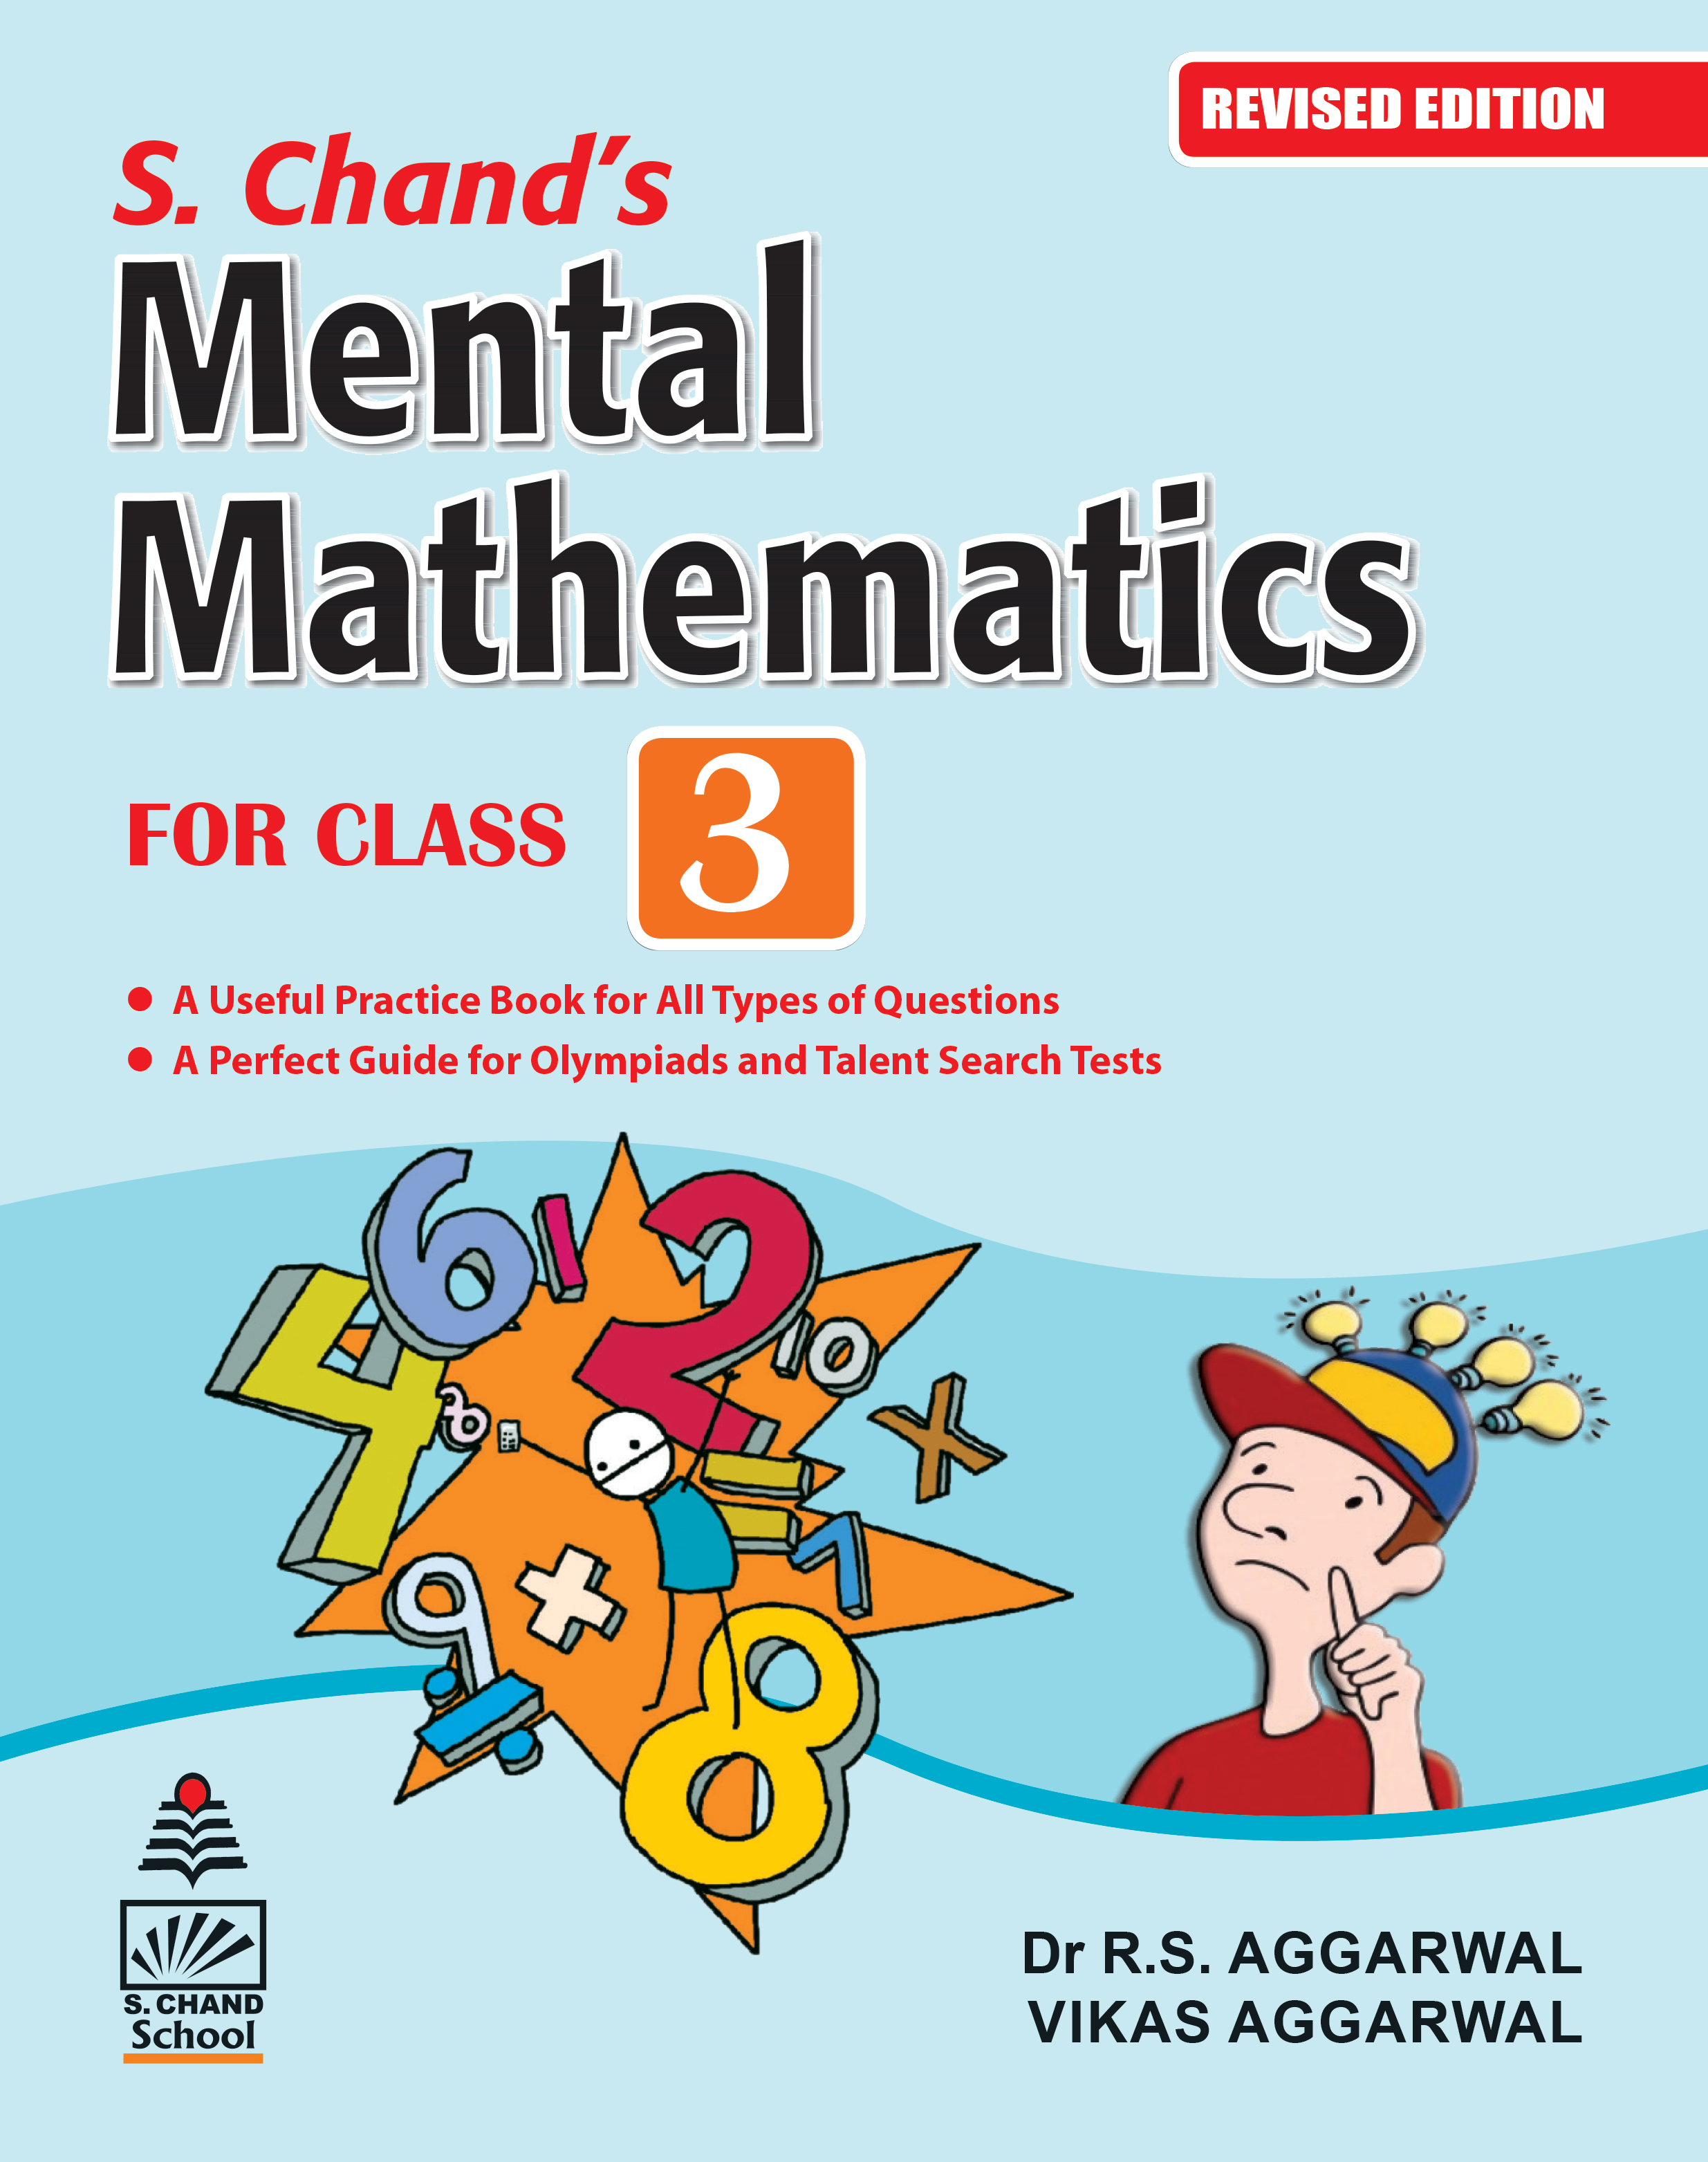 Sand S Mental Mathematics For Class 3 By Dr R S Aggarwal